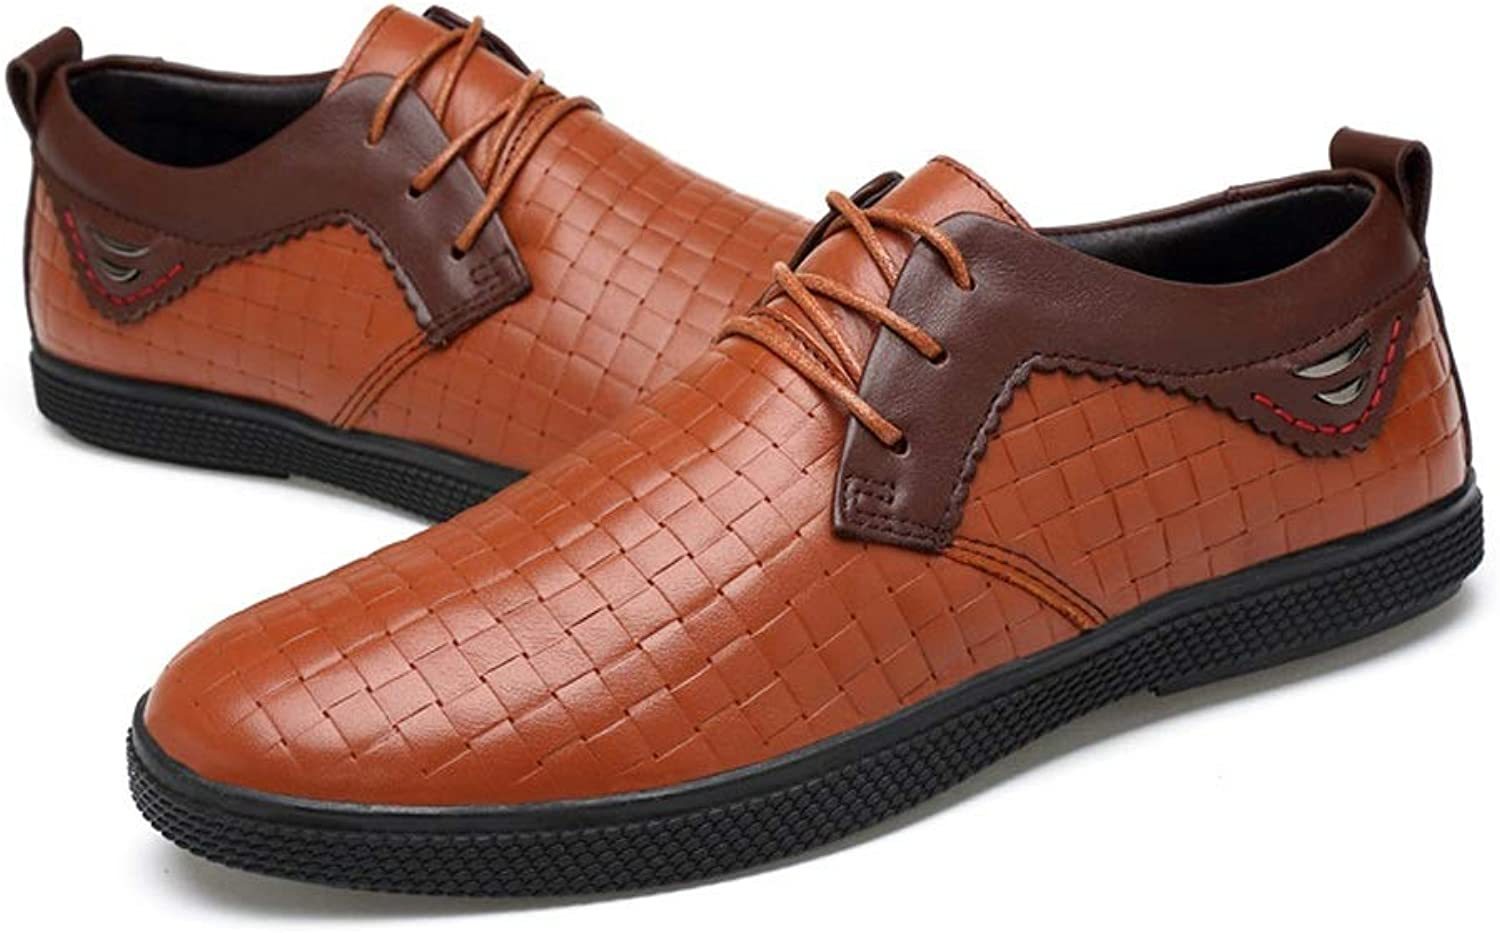 CATEDOT Men's shoes Lace up Summer Lightweight Casual Fashion leather shoes Breathable (color   orange, Size   9.5UK)